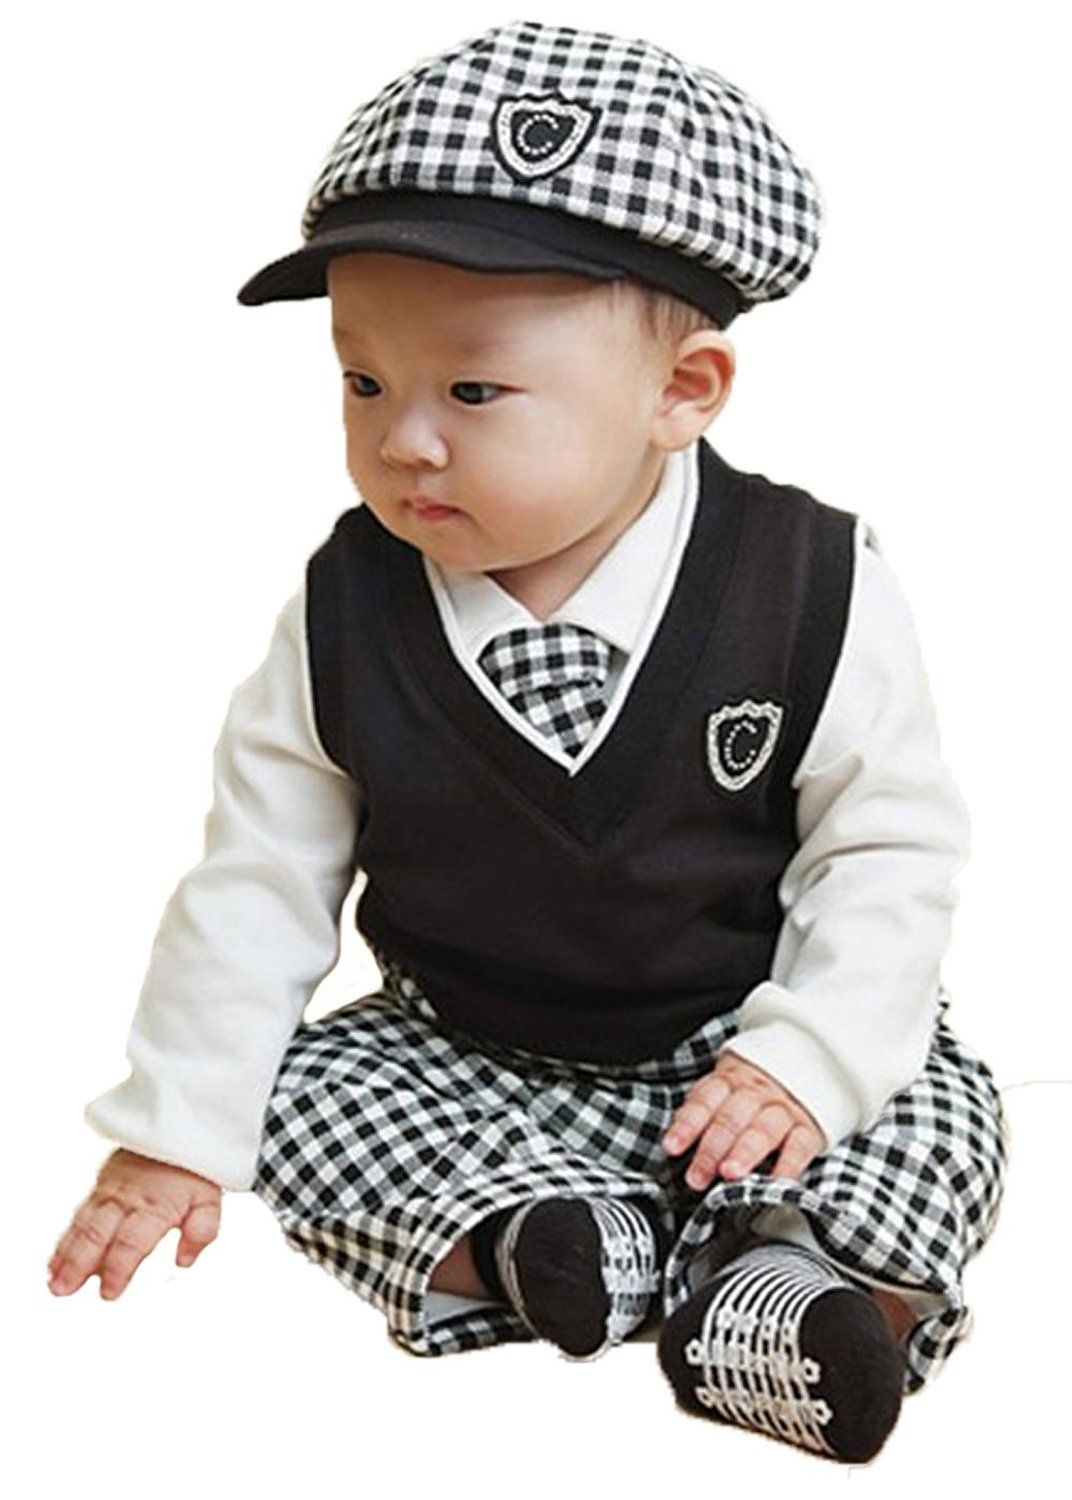 69f4dd46c97 Baby Boys Hat + Pants + White Shirt + Vest + Tie Party Baptism Clothes 5pcs  (80(Advice 6-12 month)